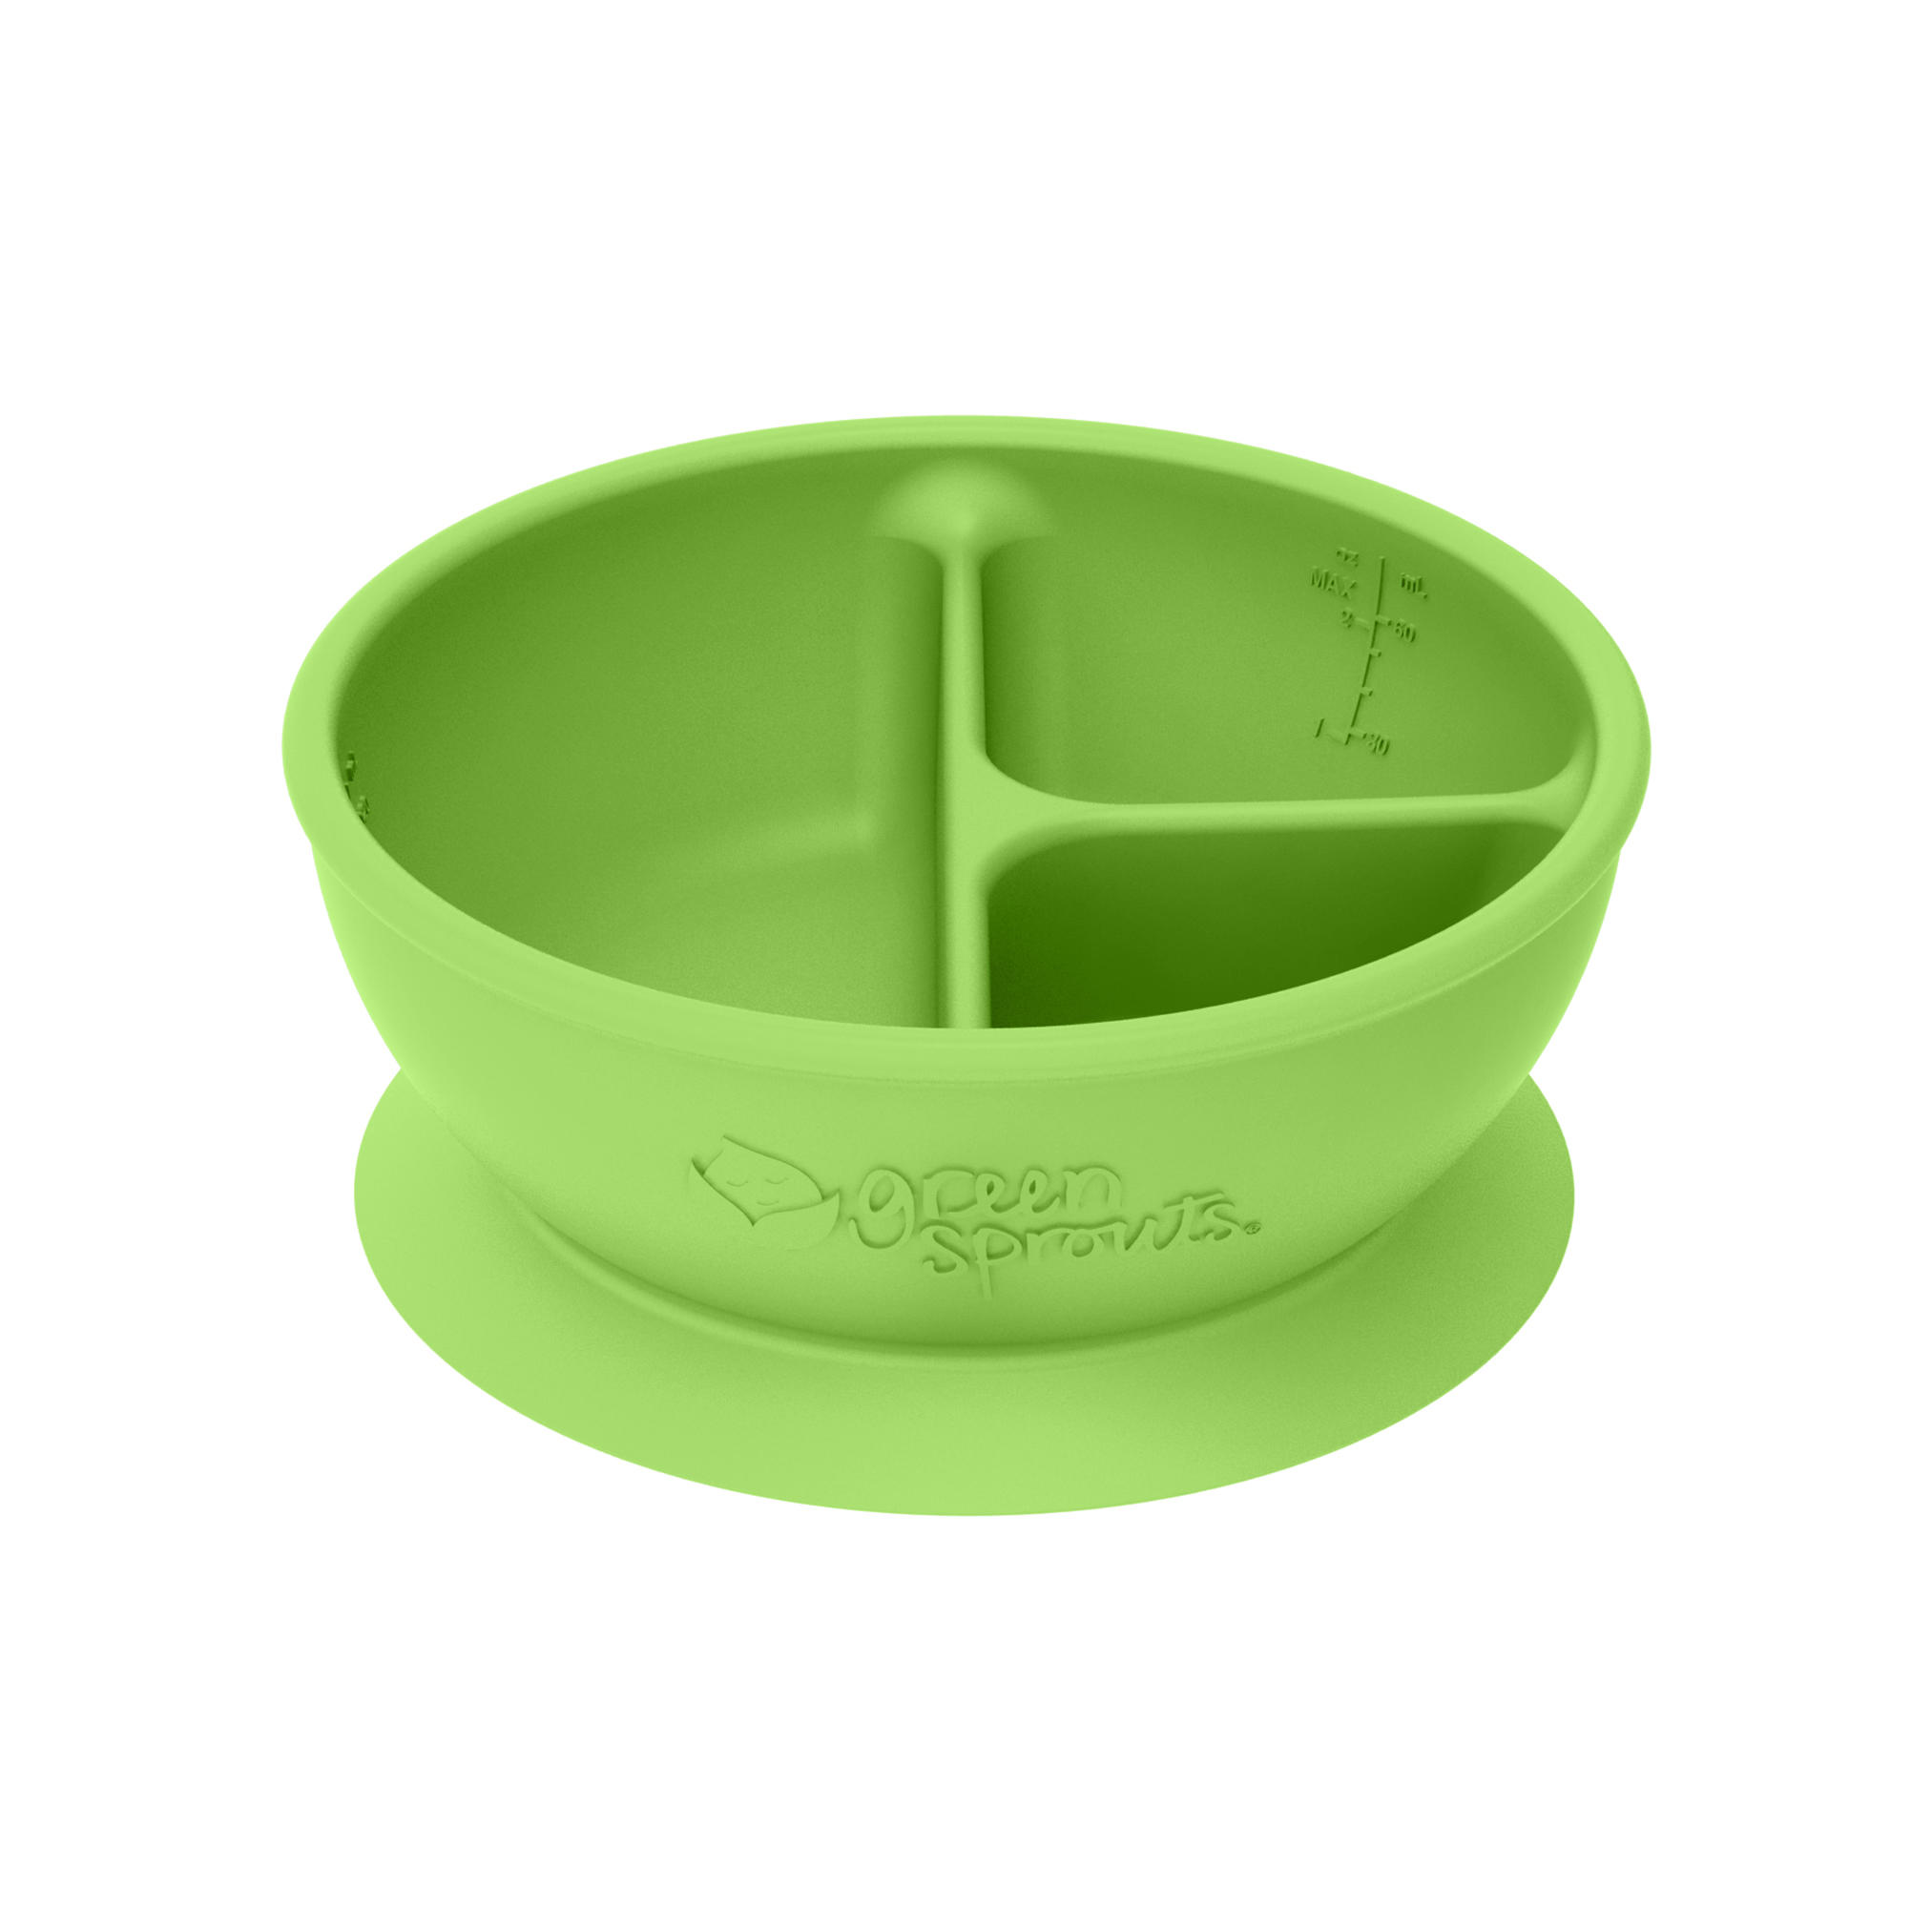 Bowl Adherente 100% Silicona Verde Green Sprouts